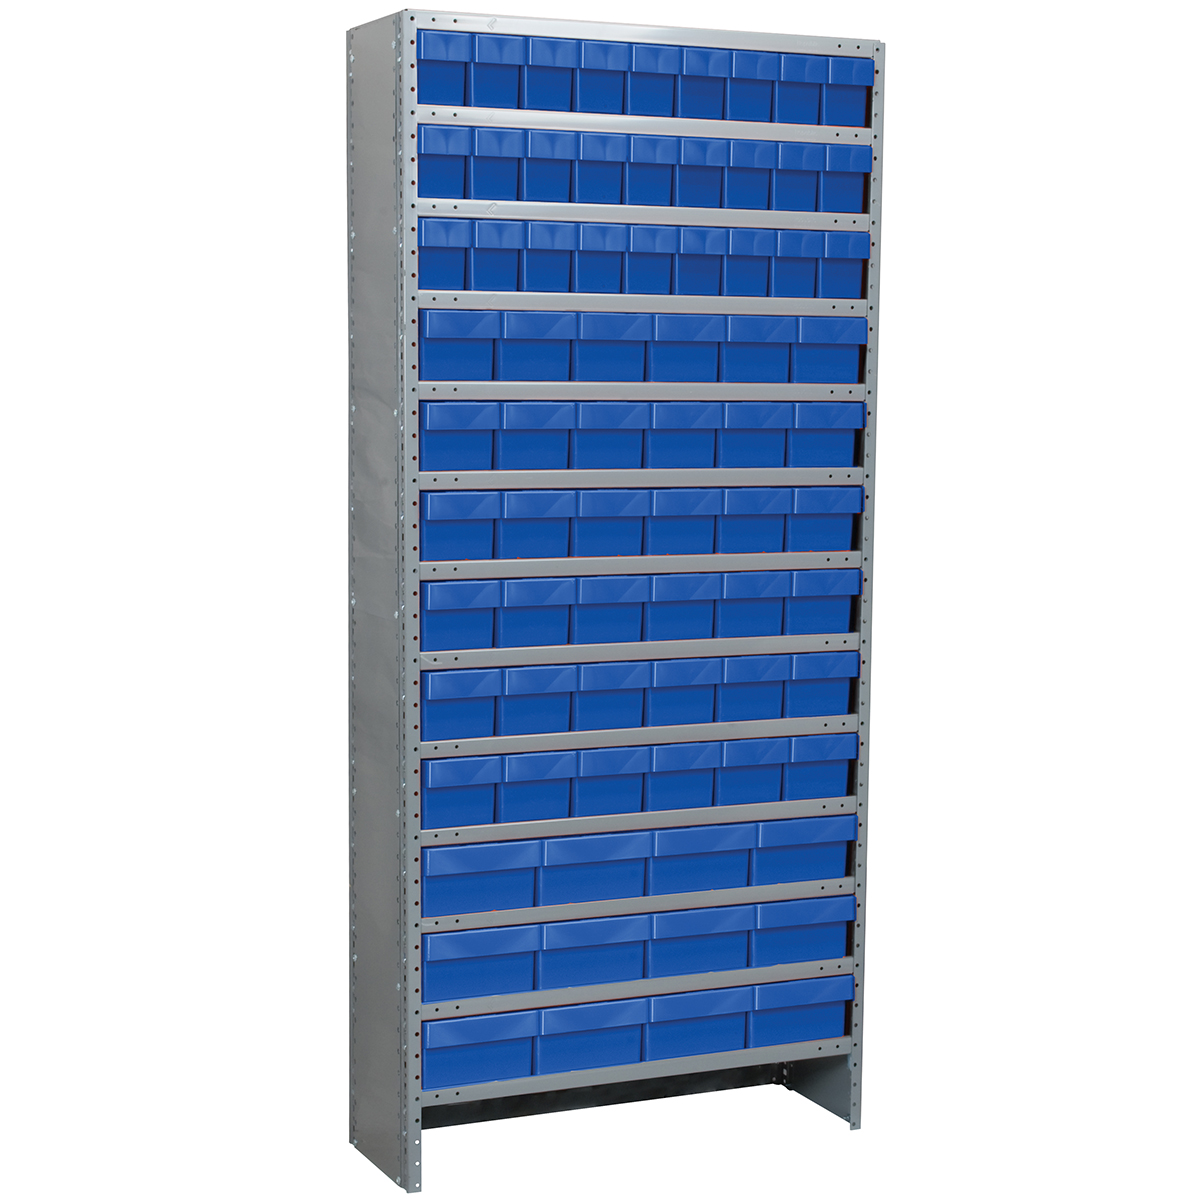 Enclosed Steel Shelving Kit, 12x36x79, 78 AkroDrawers, Gray/Blue.  This item sold in carton quantities of 1.